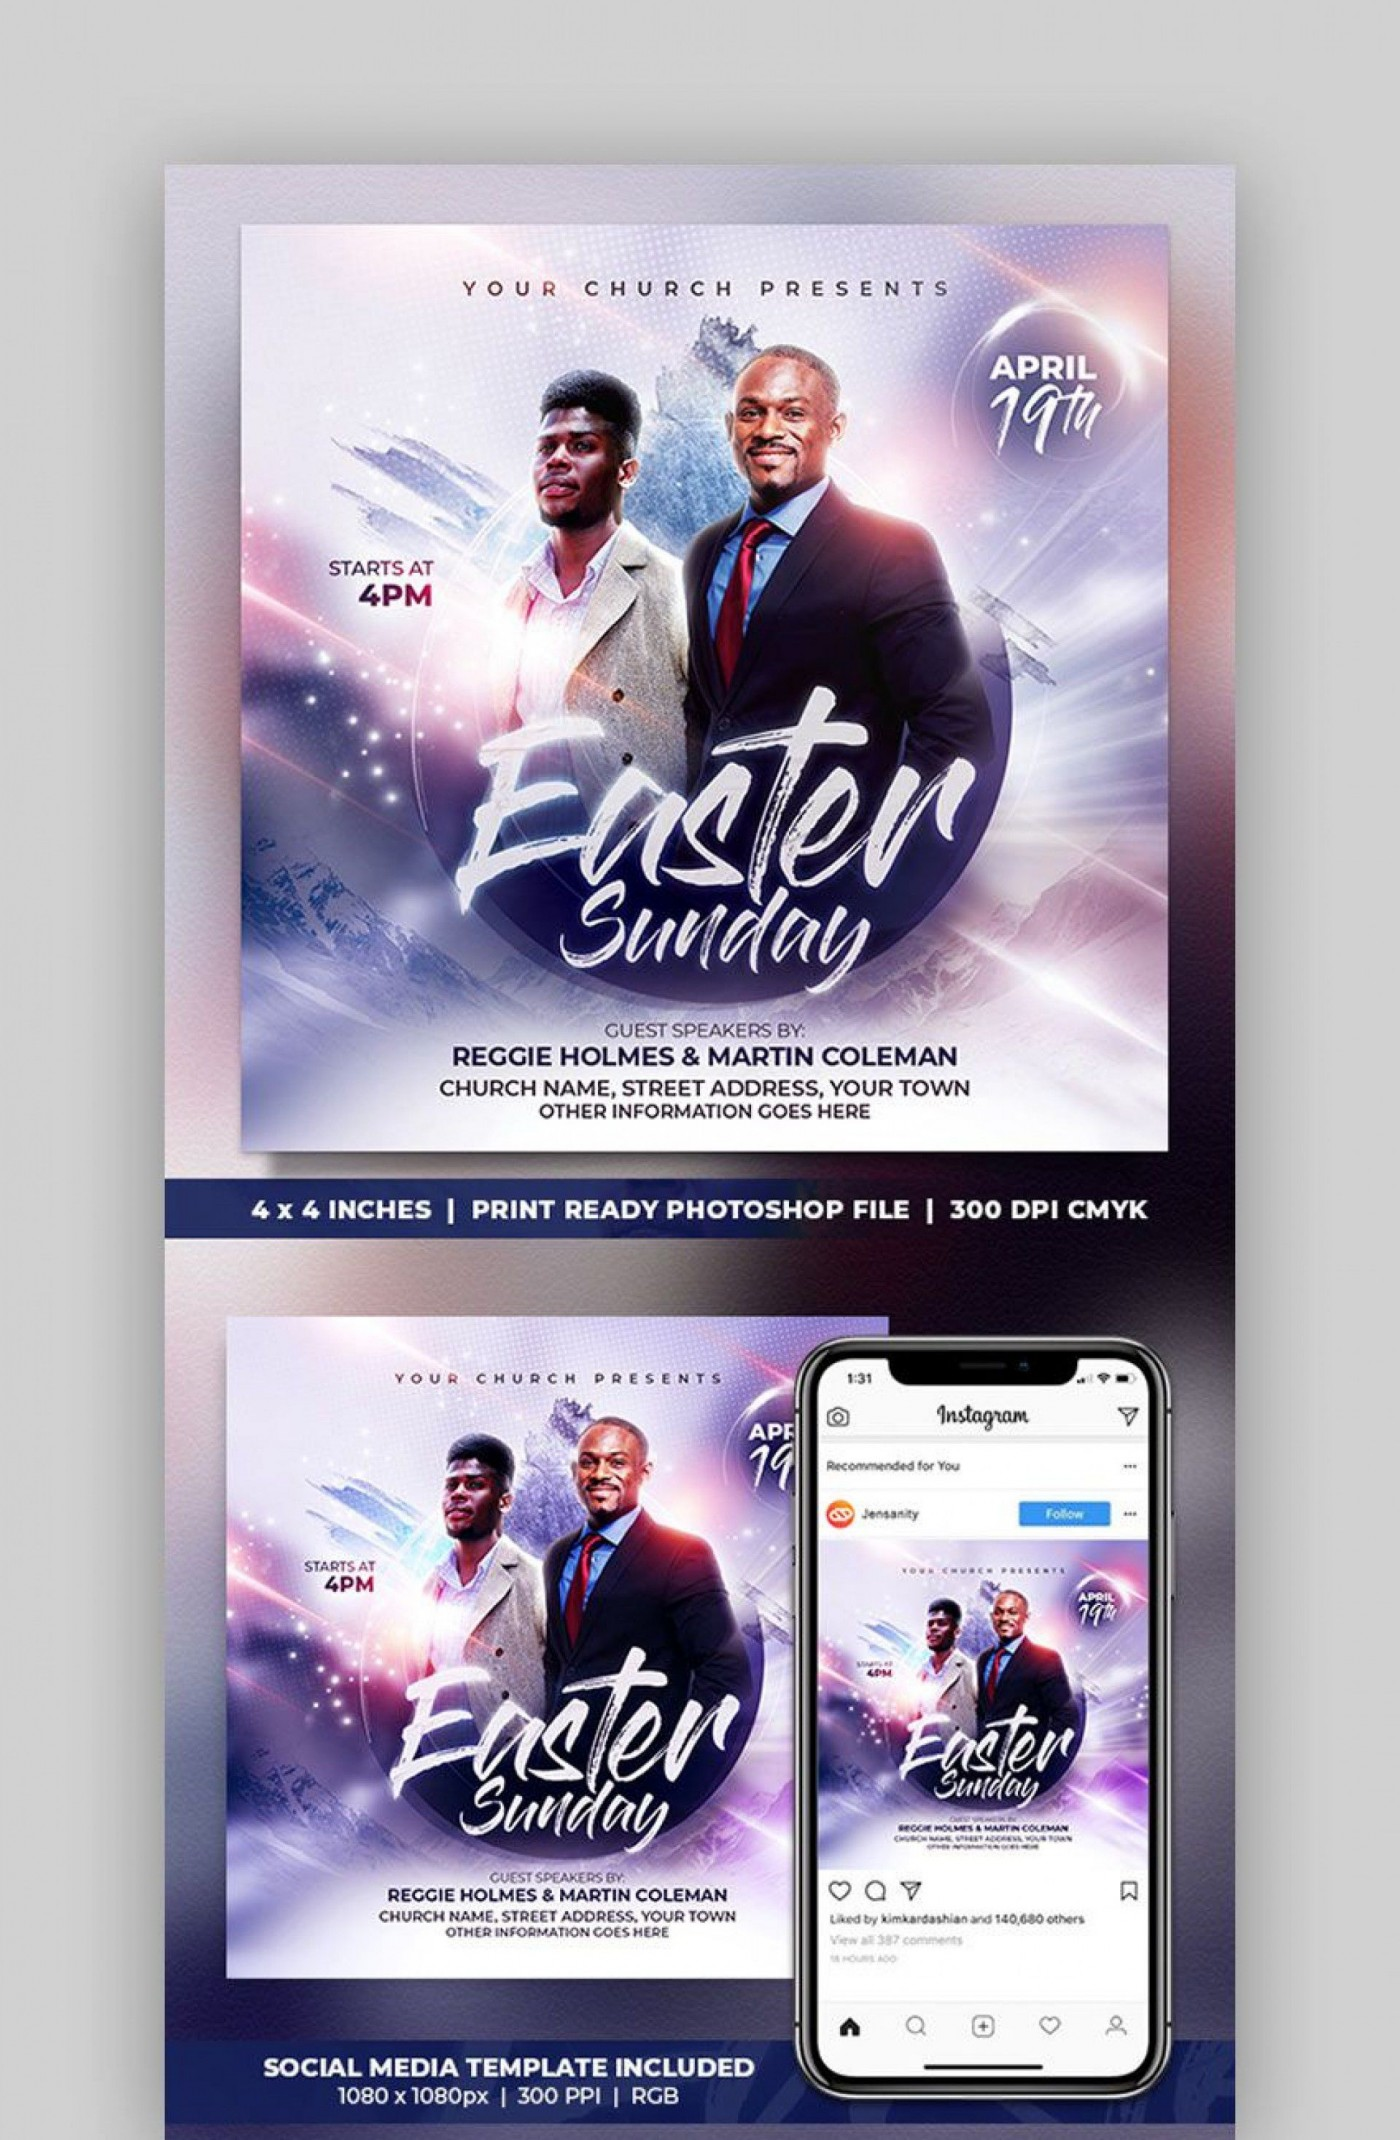 000 Breathtaking Church Flyer Template Free Printable Inspiration  Event1400